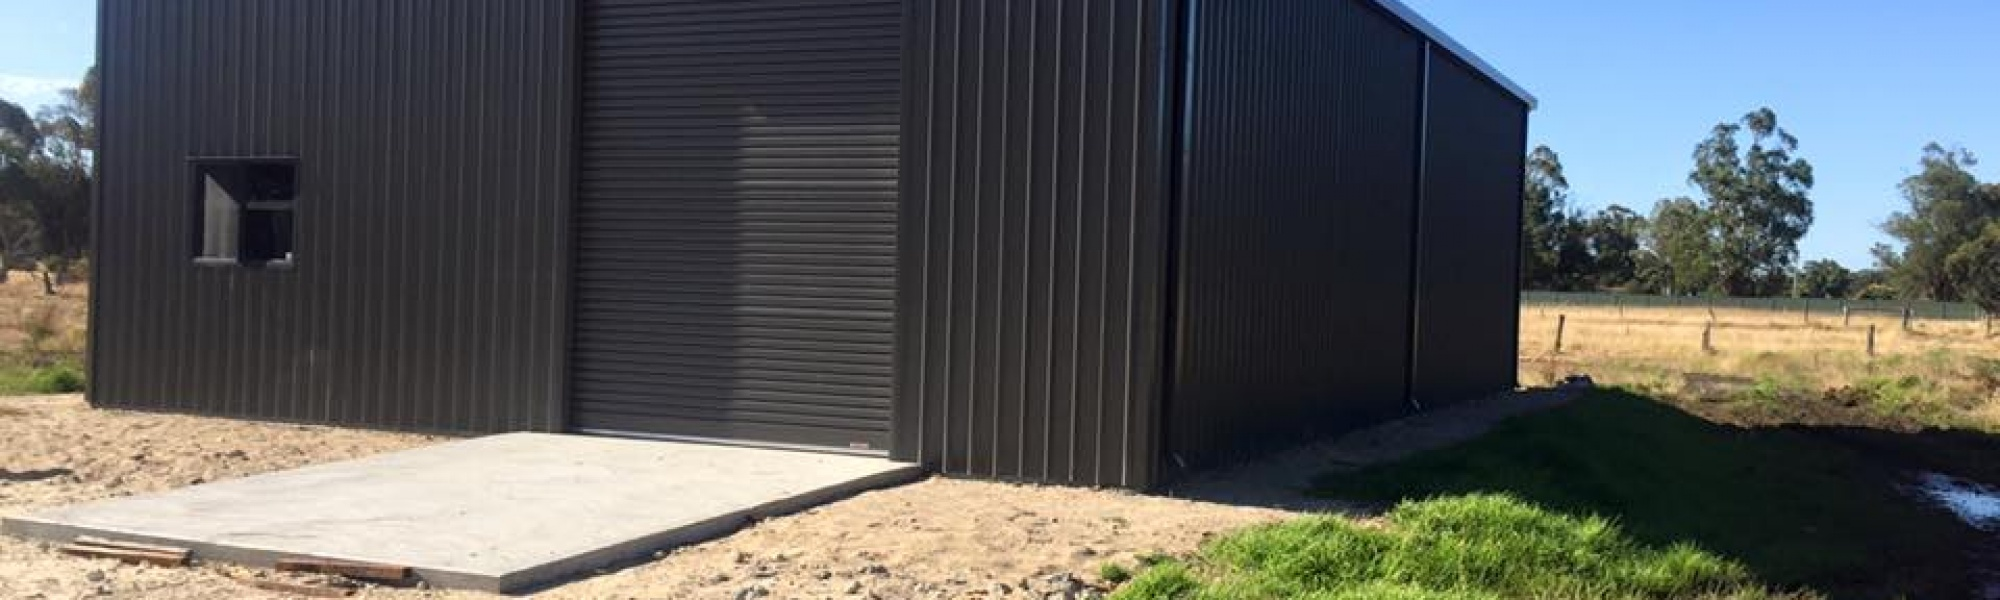 Industry Maintenance Solutions - Shed